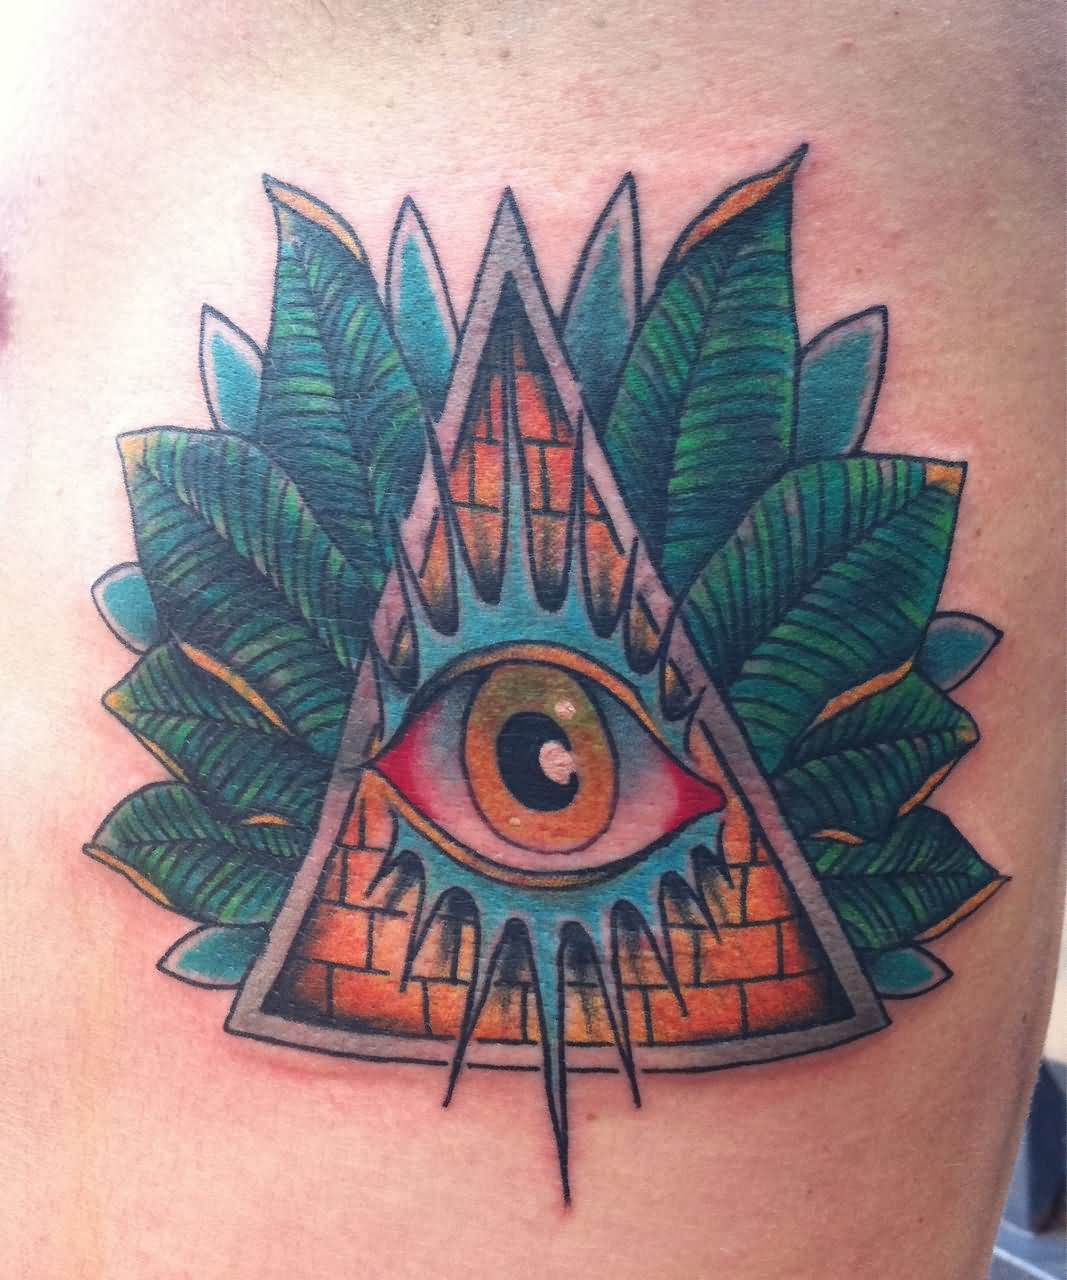 62 Traditional Eye Tattoo Ideas And Designs About Eyes: Triangle Eye Tattoo Images & Designs